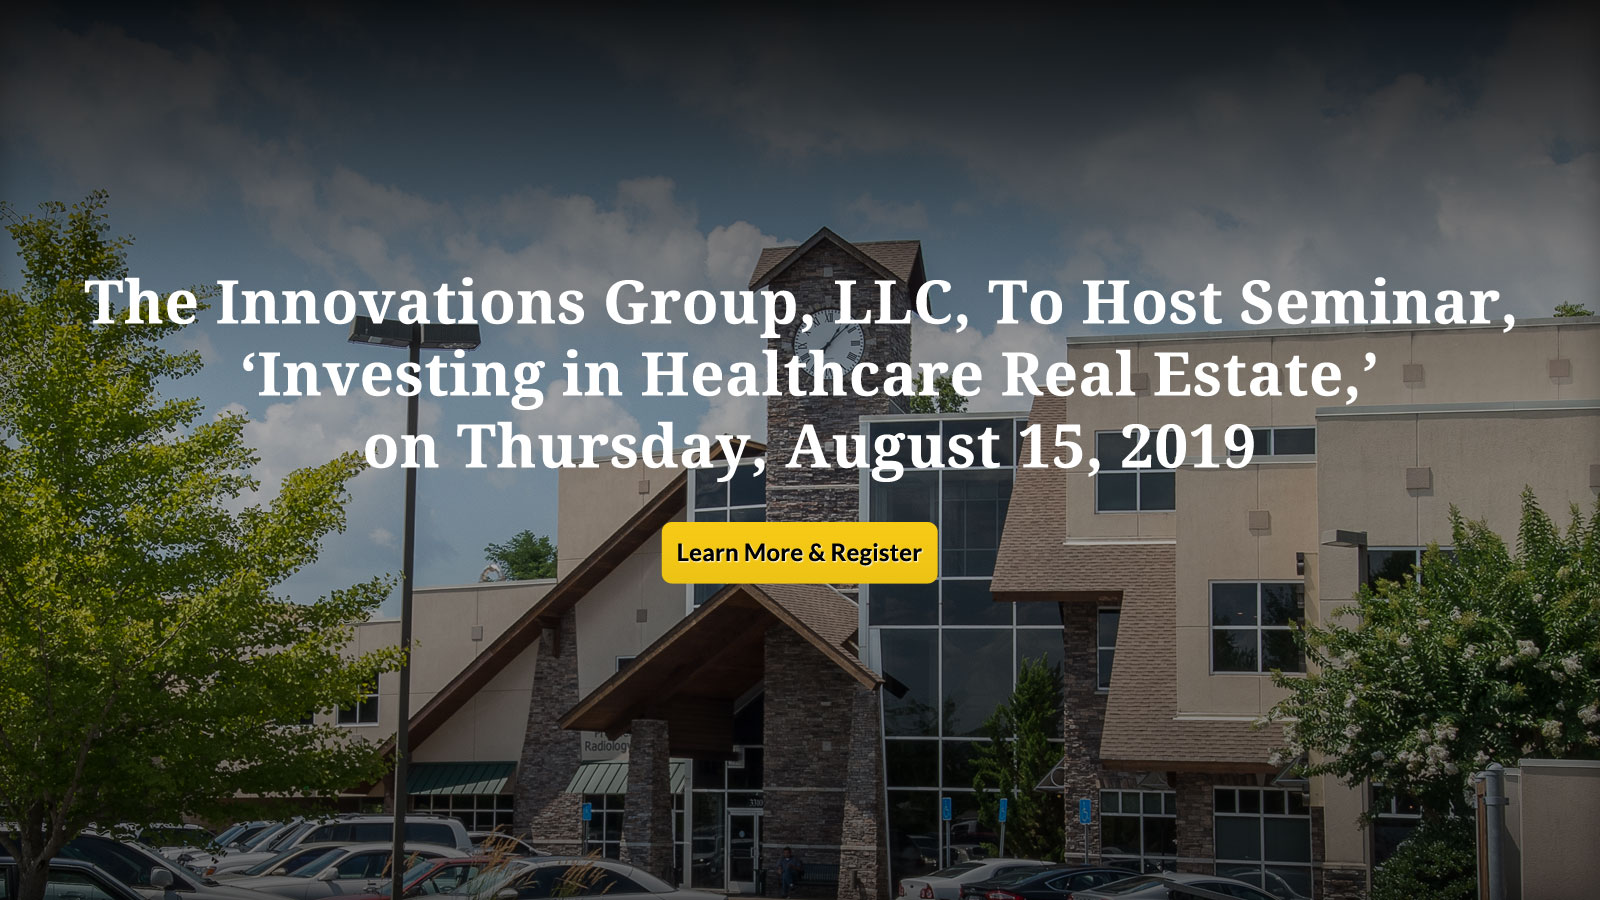 The Innovations Group to Host Seminar, Investing in Healthcare Real Estate, on Thursday August 15, 2019